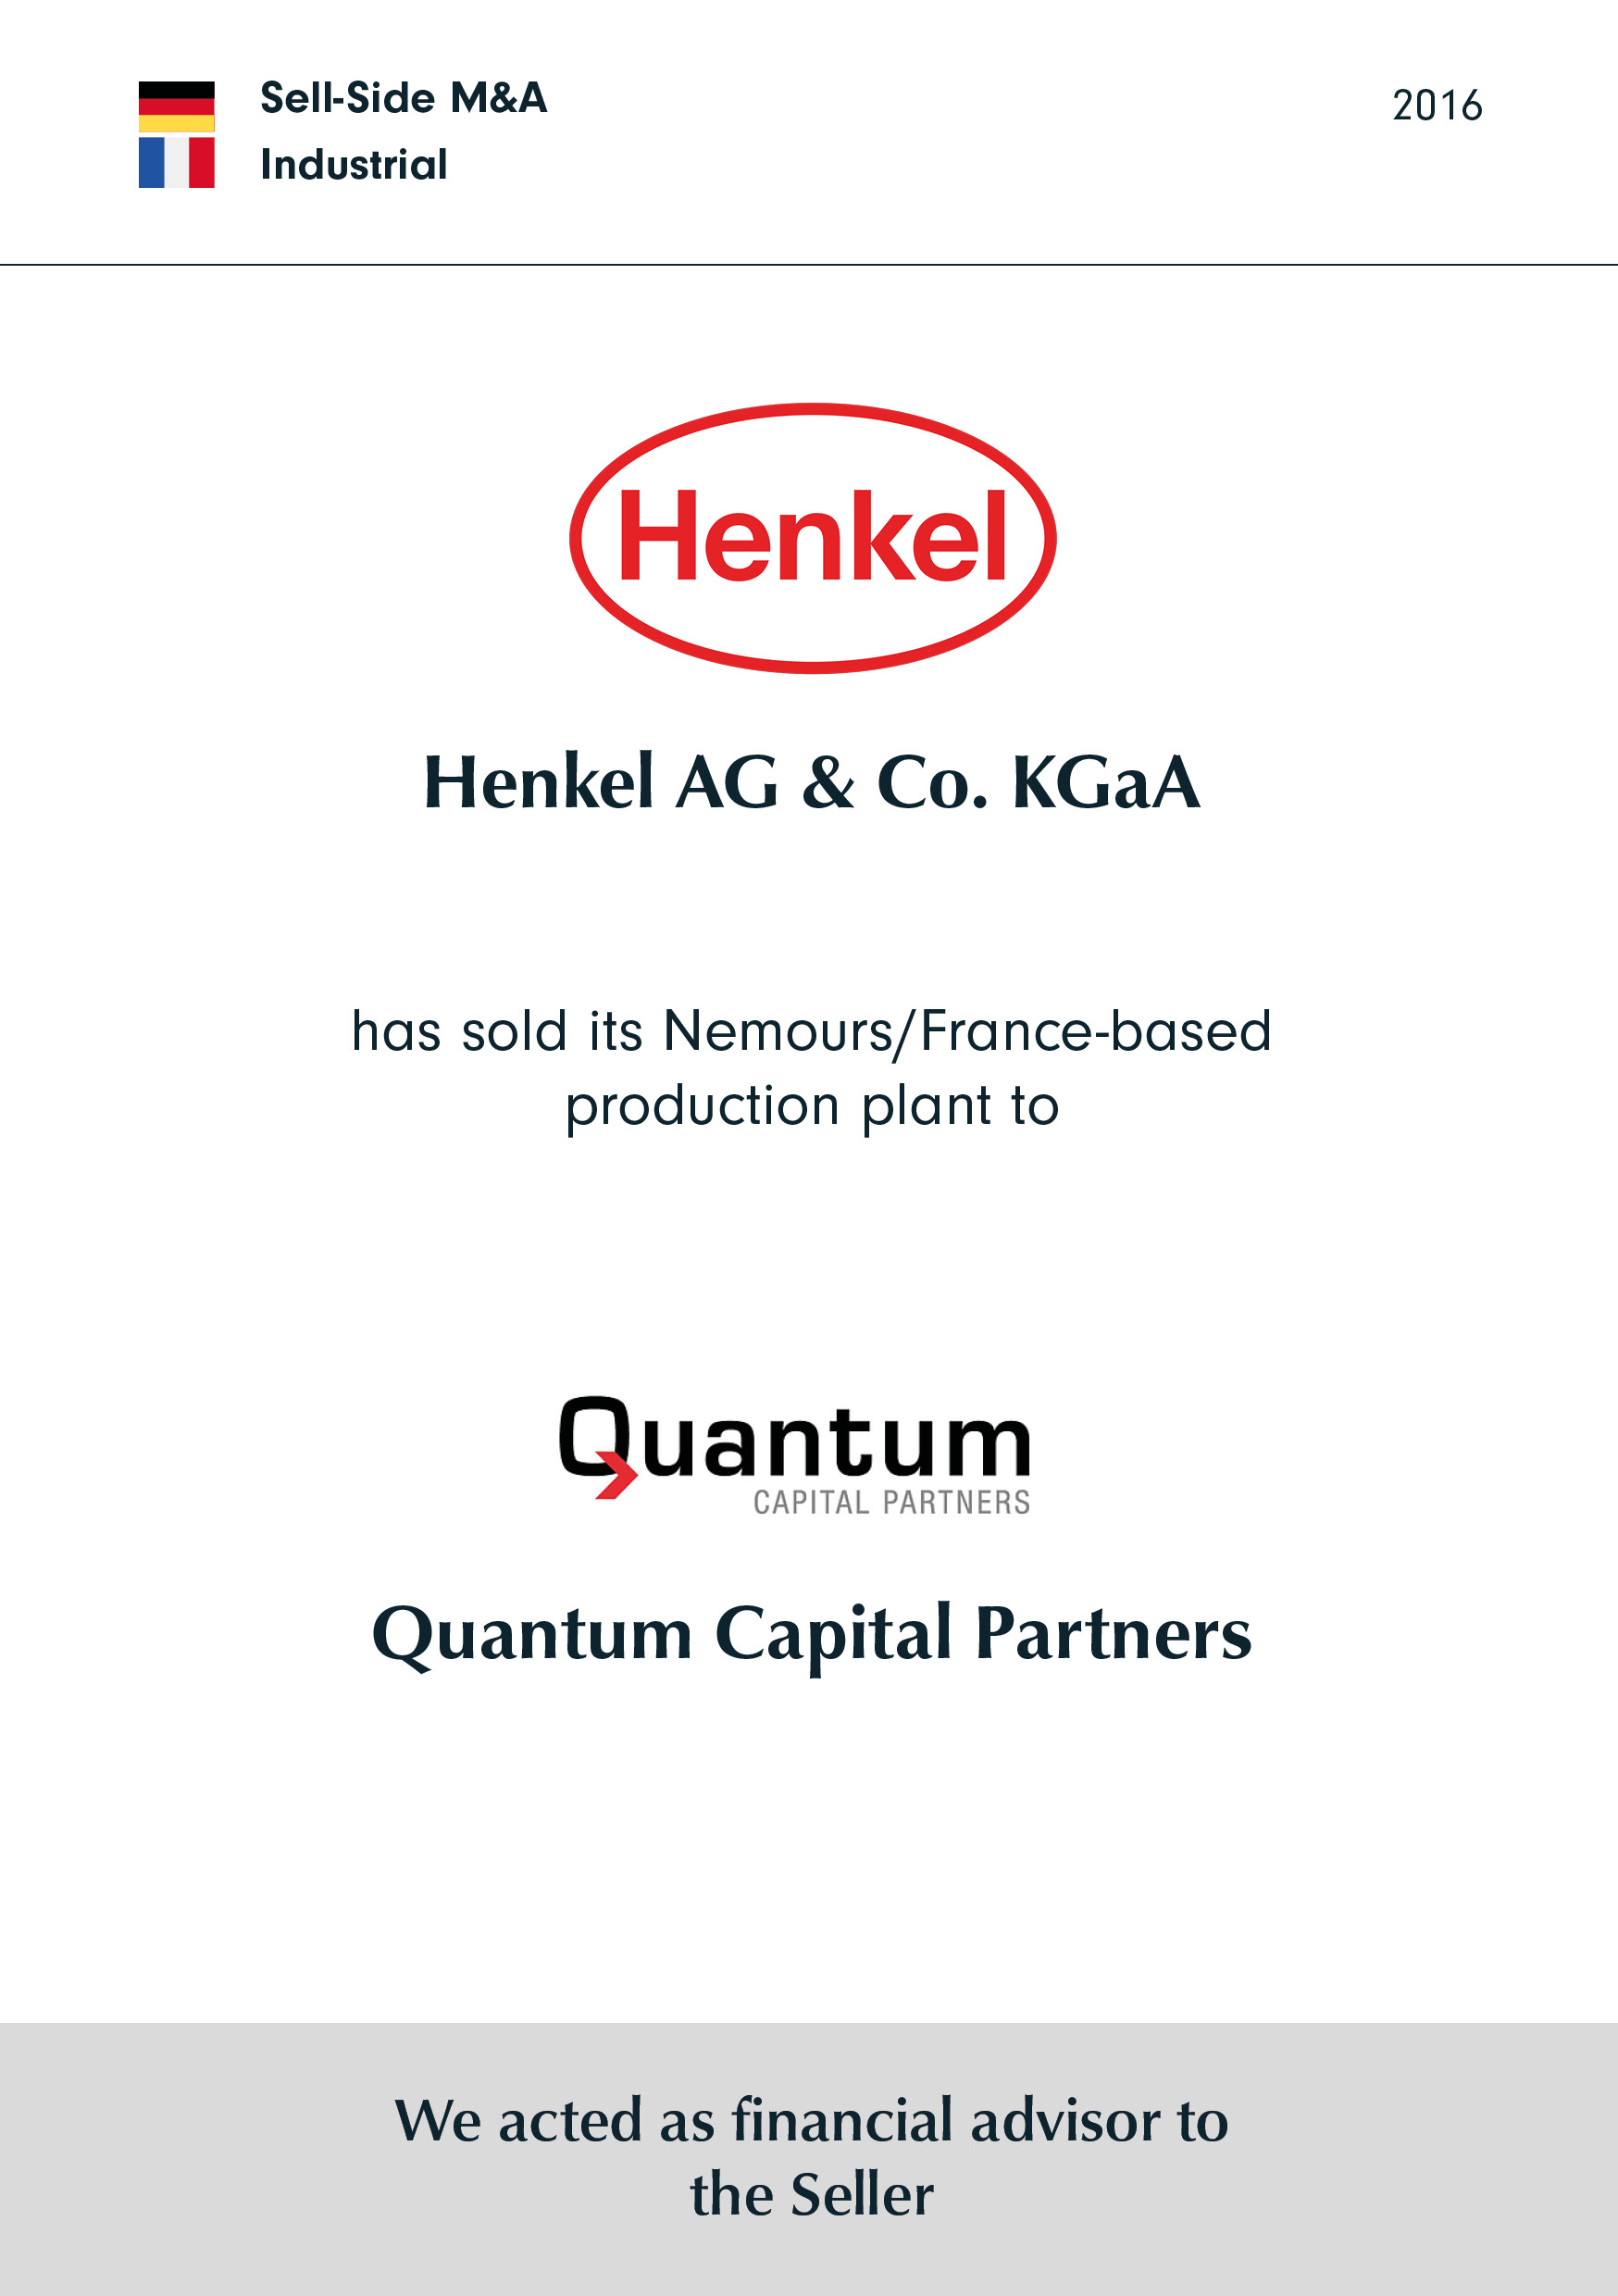 Henkel has sold its Nemours/France-based production plant to QUANTUM